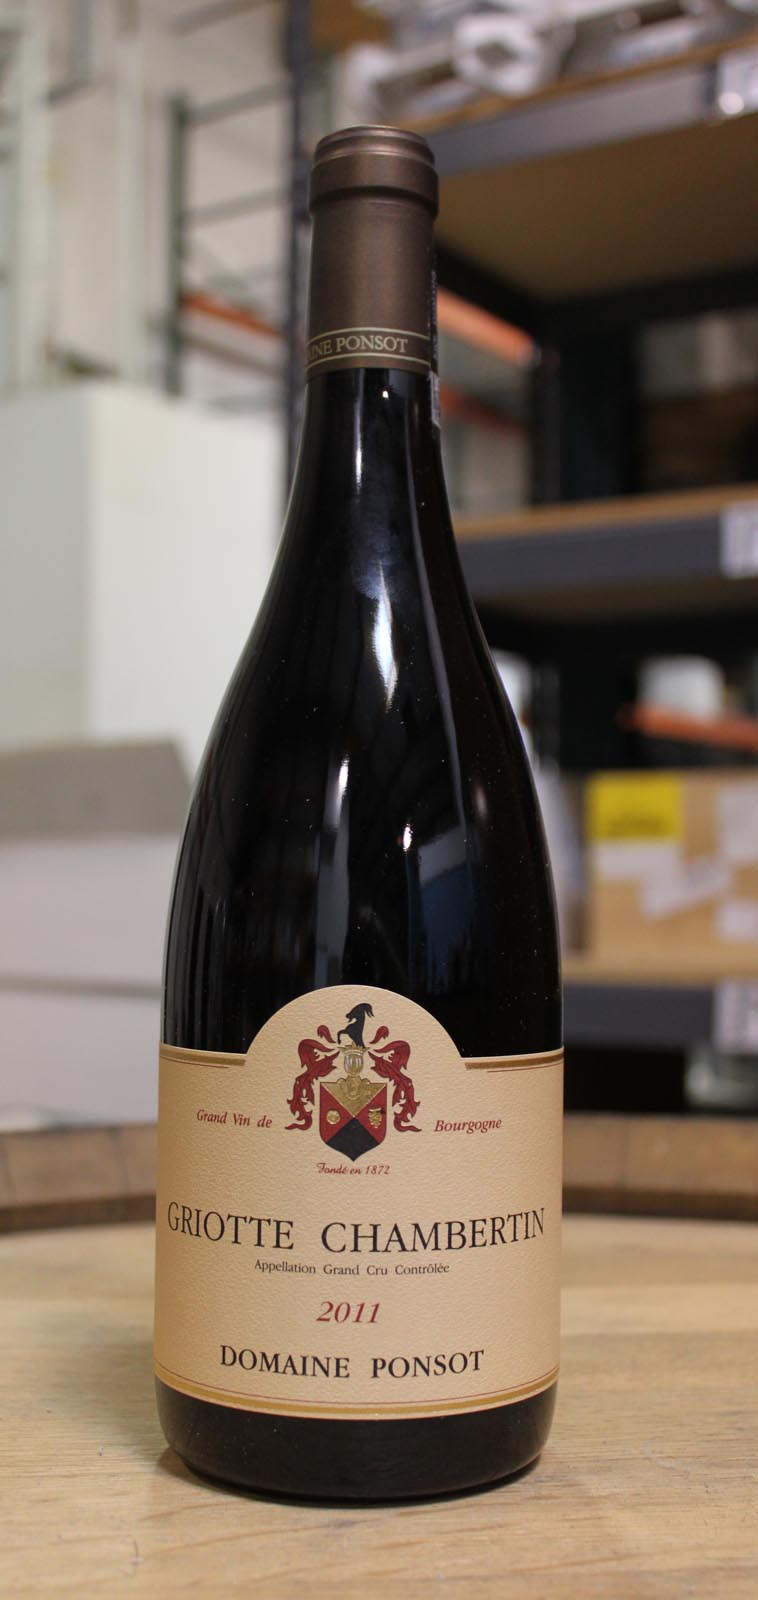 Domaine Ponsot Griottes Chambertin 2011, 750ml (BH92-95) from The BPW - Merchants of rare and fine wines.